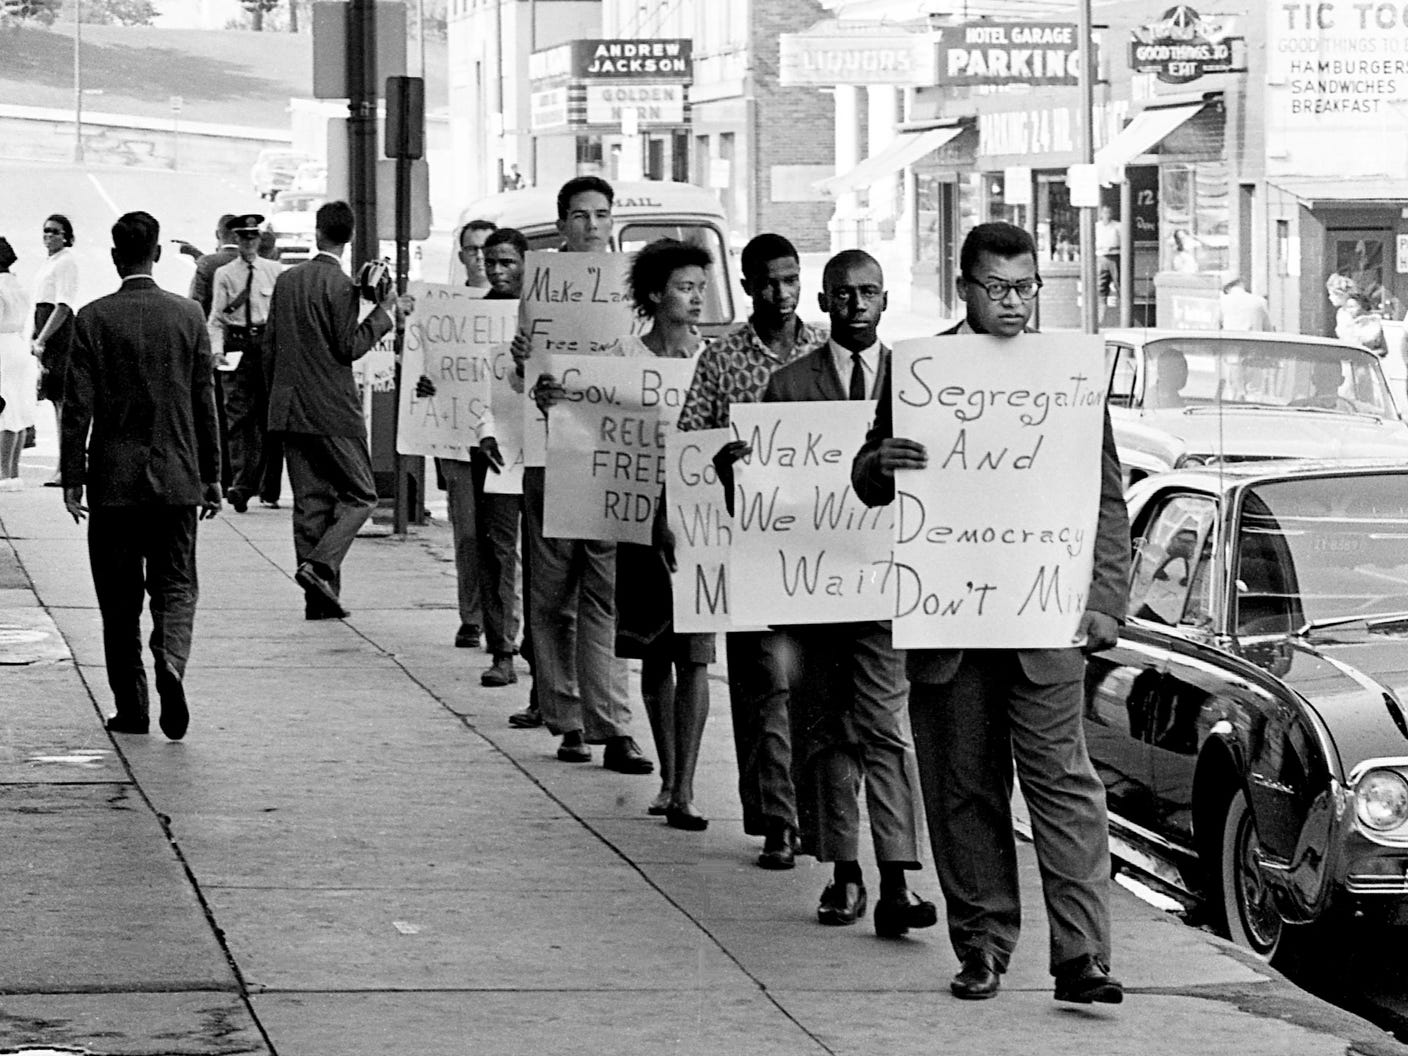 A small group pickets Sept. 25, 1961, in front of the Hermitage Hotel in downtown Nashville, where Tennessee Gov. Buford Ellington was in a conference. The group, with the Rev. James Lawson, front, is seeking reinstatement of the 14 Freedom Riders dismissed from Tennessee A & I State University in June.